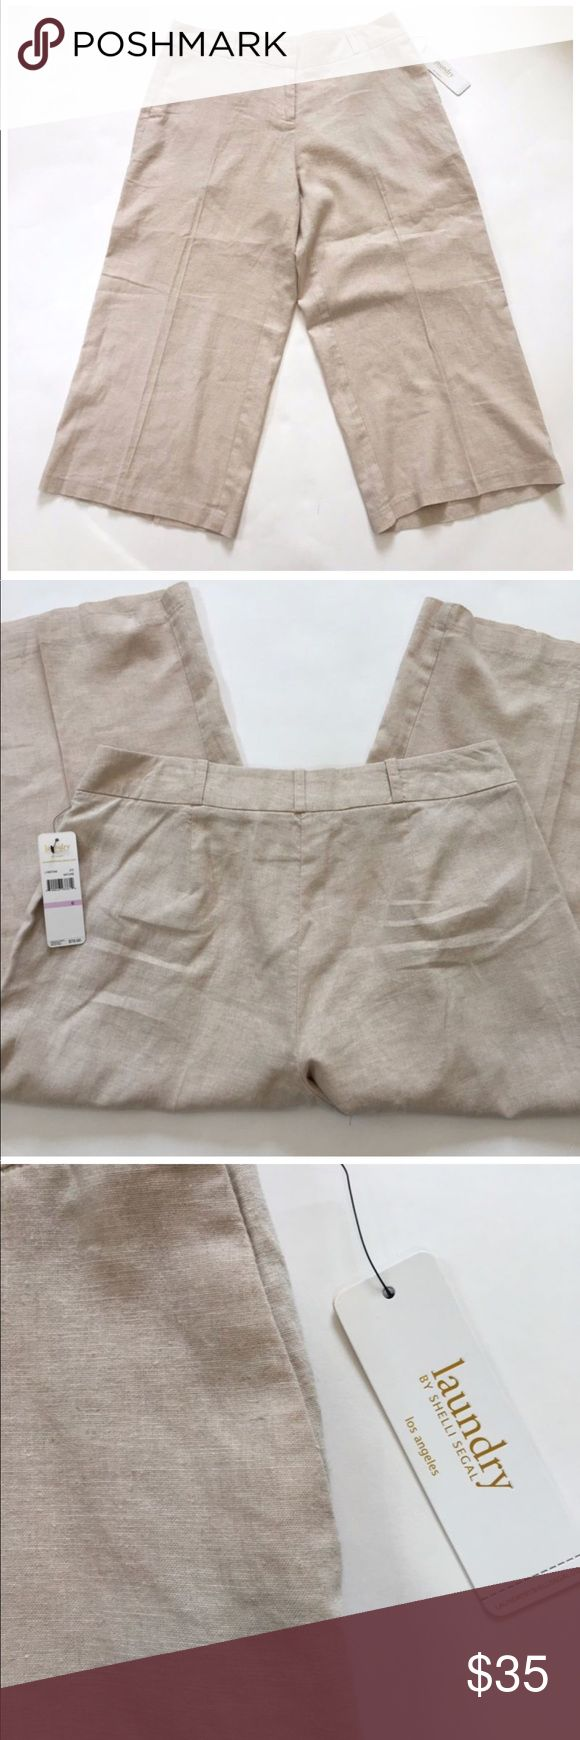 •Laundry Shelli Segal• Cropped Wide Linen Pants NEW WITH TAGS NEVER WORN! Please feel free to ask any questions or make an offer! All prices are negotiable! Laundry By Shelli Segal Pants Wide Leg